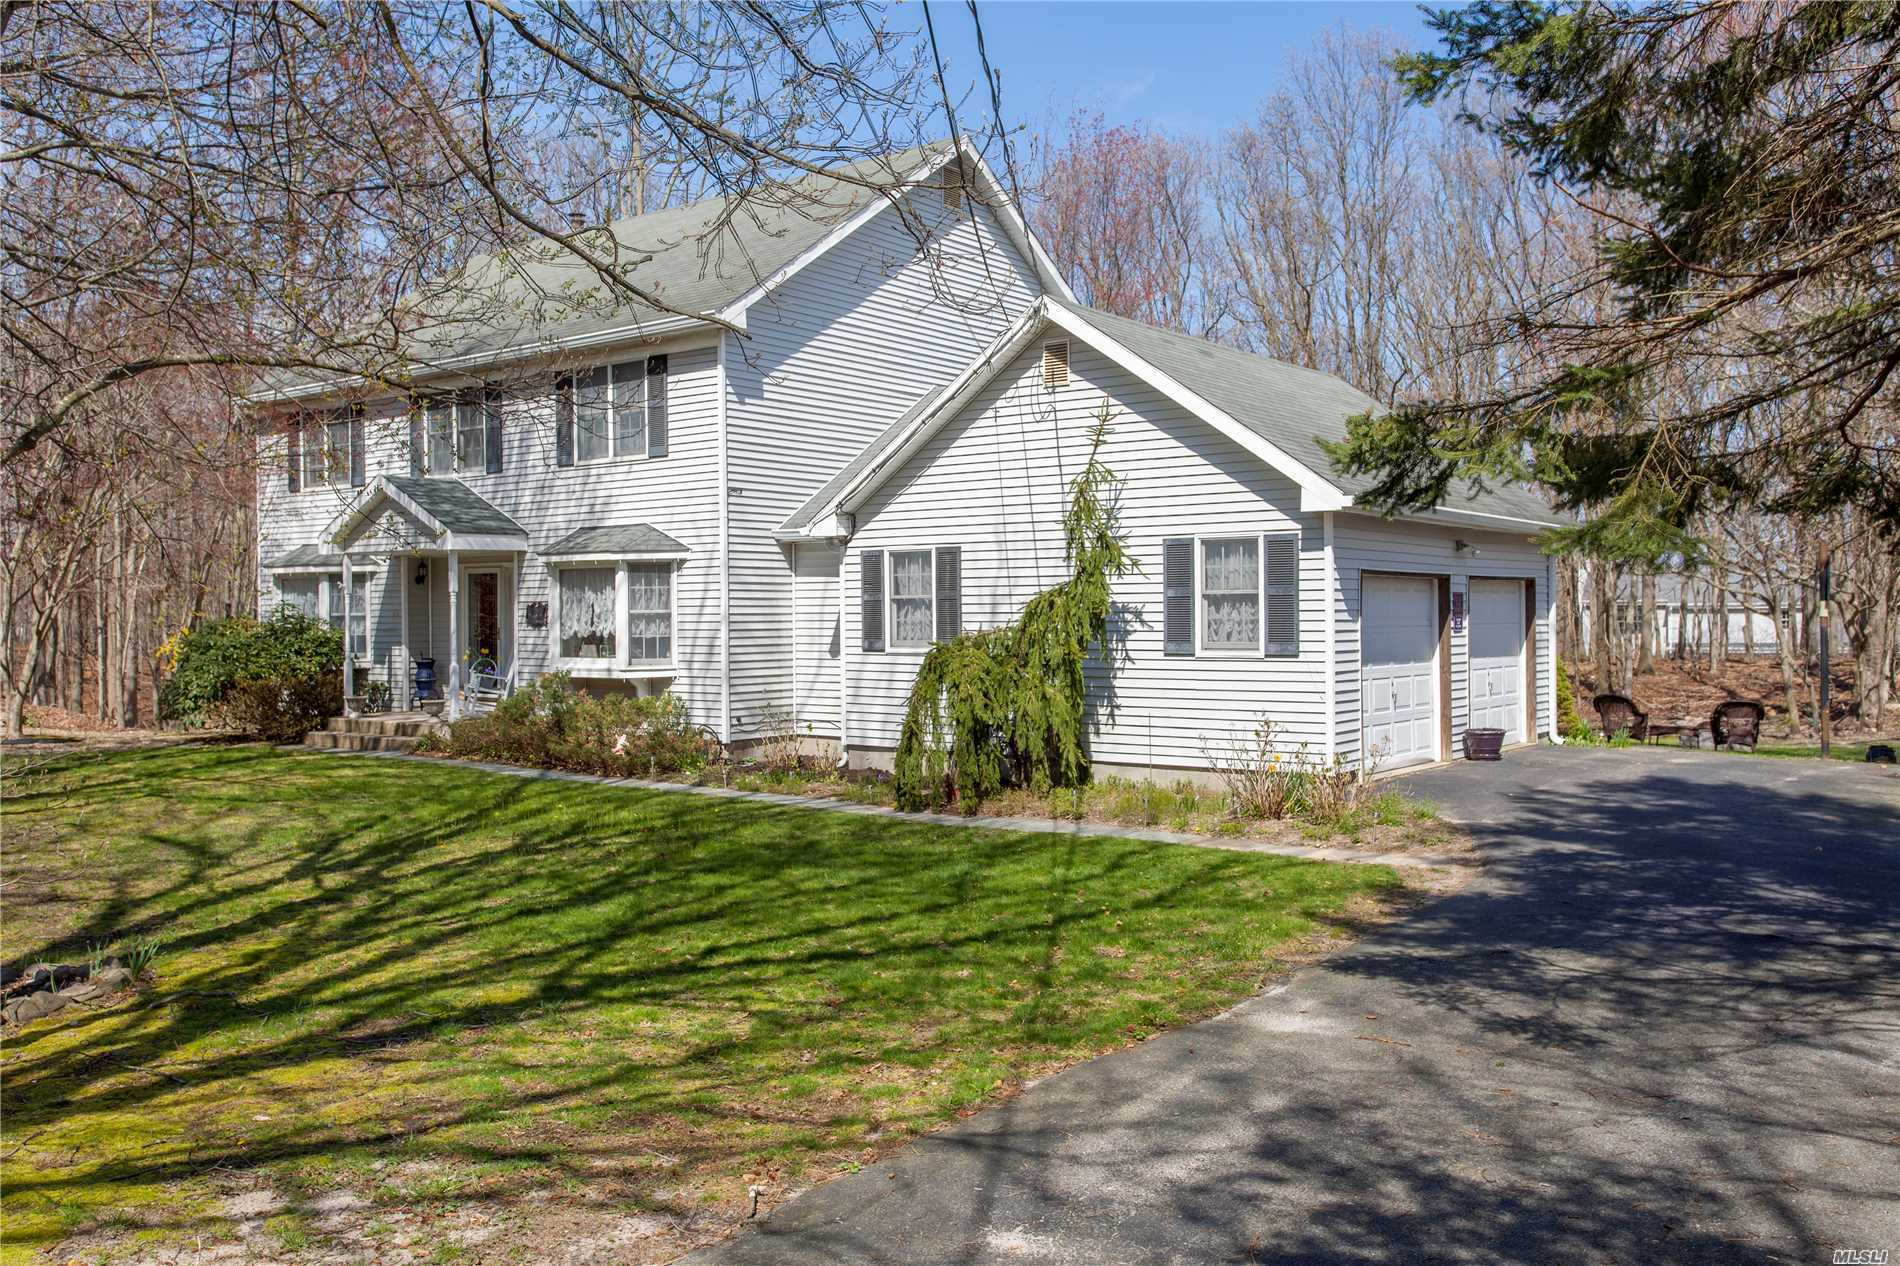 83 Brookhaven Dr - Rocky Point, New York